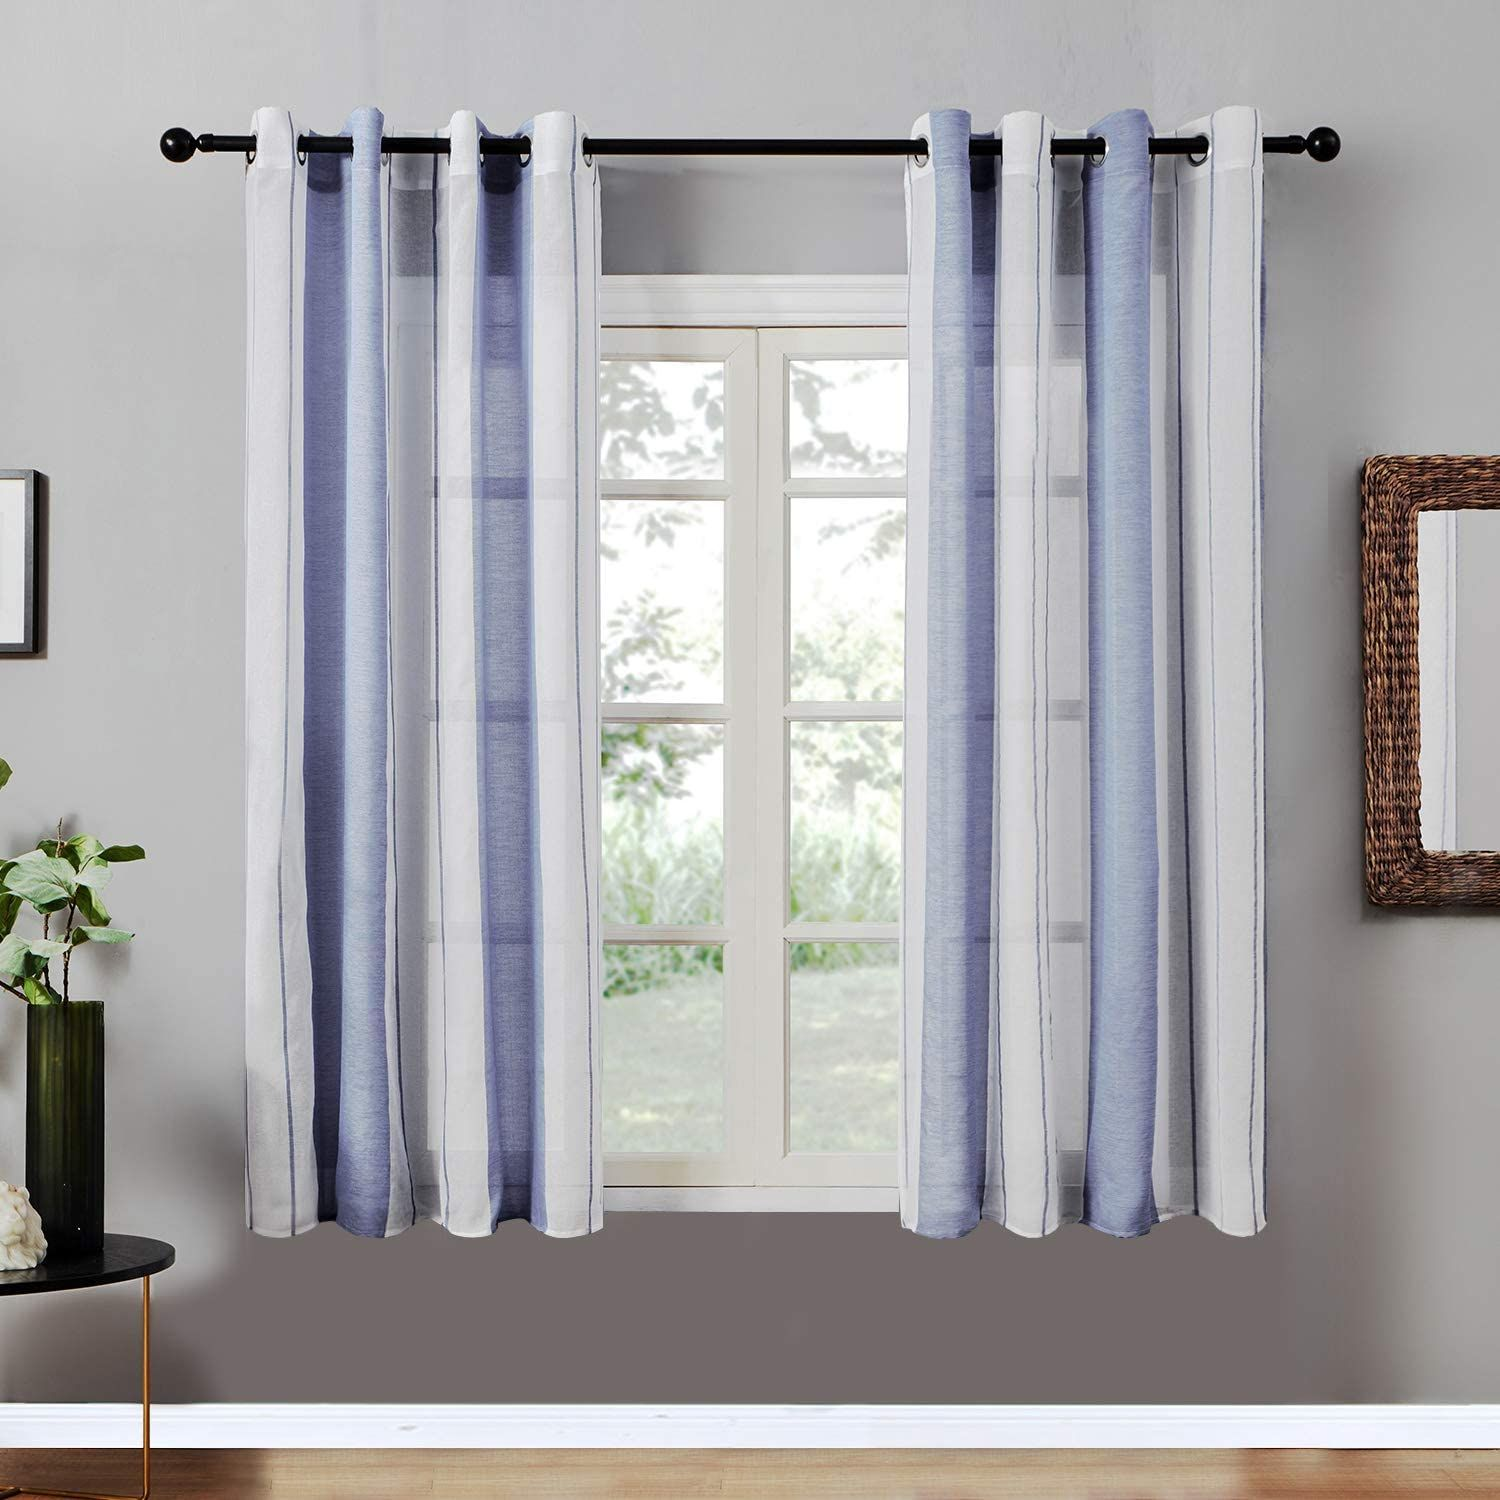 Pin On Window Treatments #navy #living #room #curtains